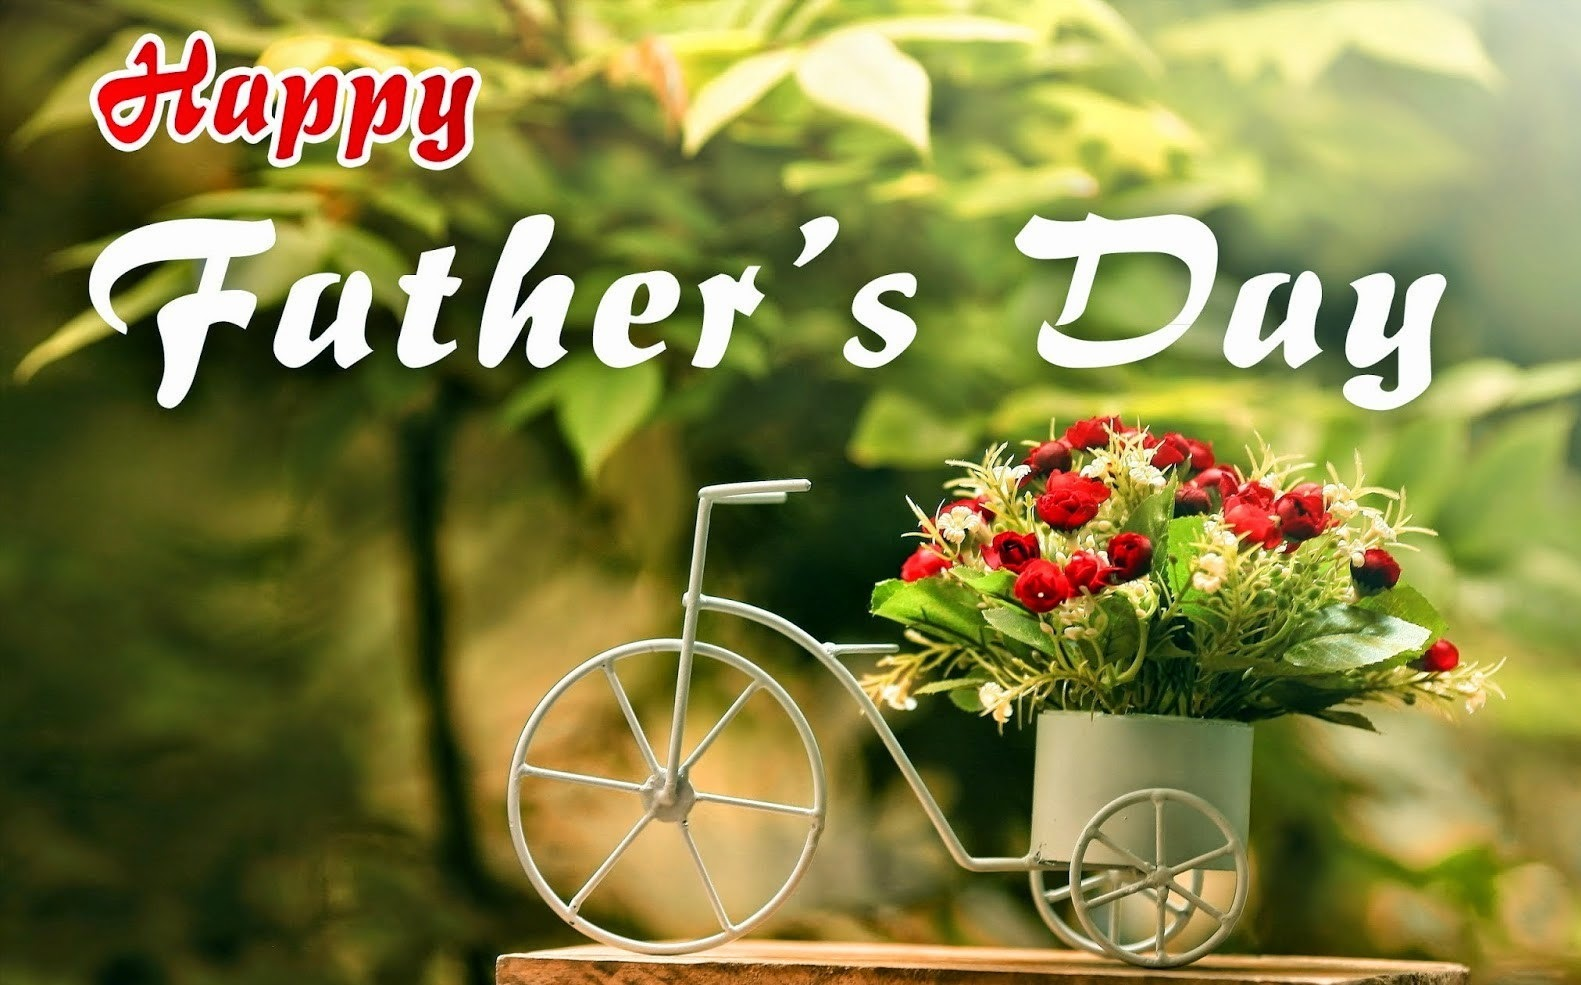 Happy Fathers Day Whatsapp Status DP Profile Images and Pictures